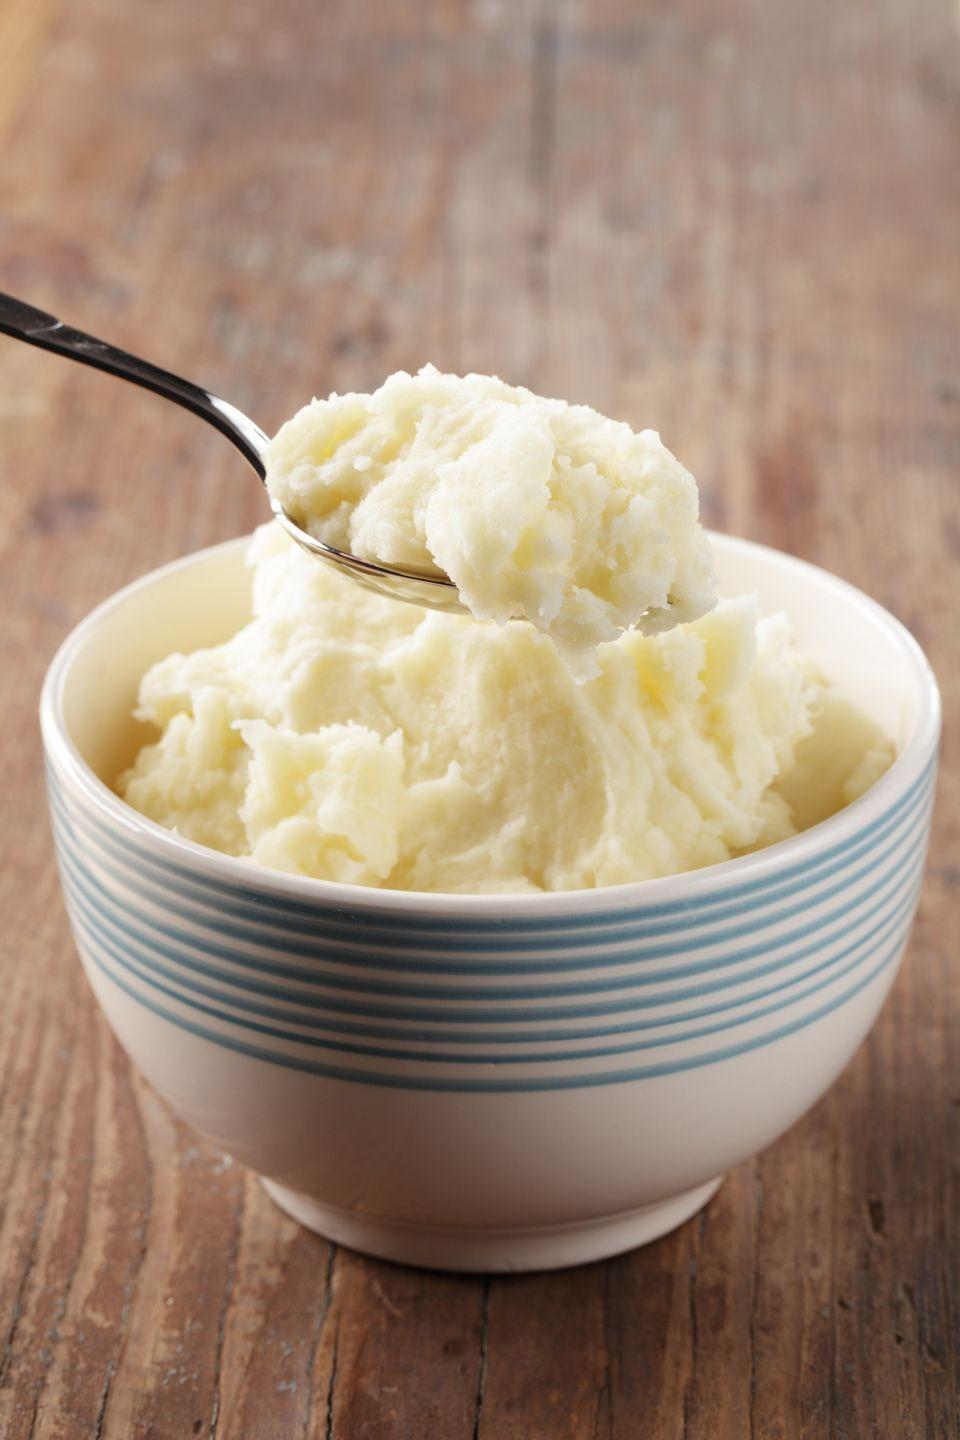 "<p>A classic staple for just about any feast, these mashed potatoes have a dash of country.</p><p><strong><a href=""https://www.countryliving.com/food-drinks/recipes/a1020/country-mashed-potatoes-3125/?click=main_sr"" rel=""nofollow noopener"" target=""_blank"" data-ylk=""slk:Get the recipe"" class=""link rapid-noclick-resp"">Get the recipe</a>.</strong></p>"